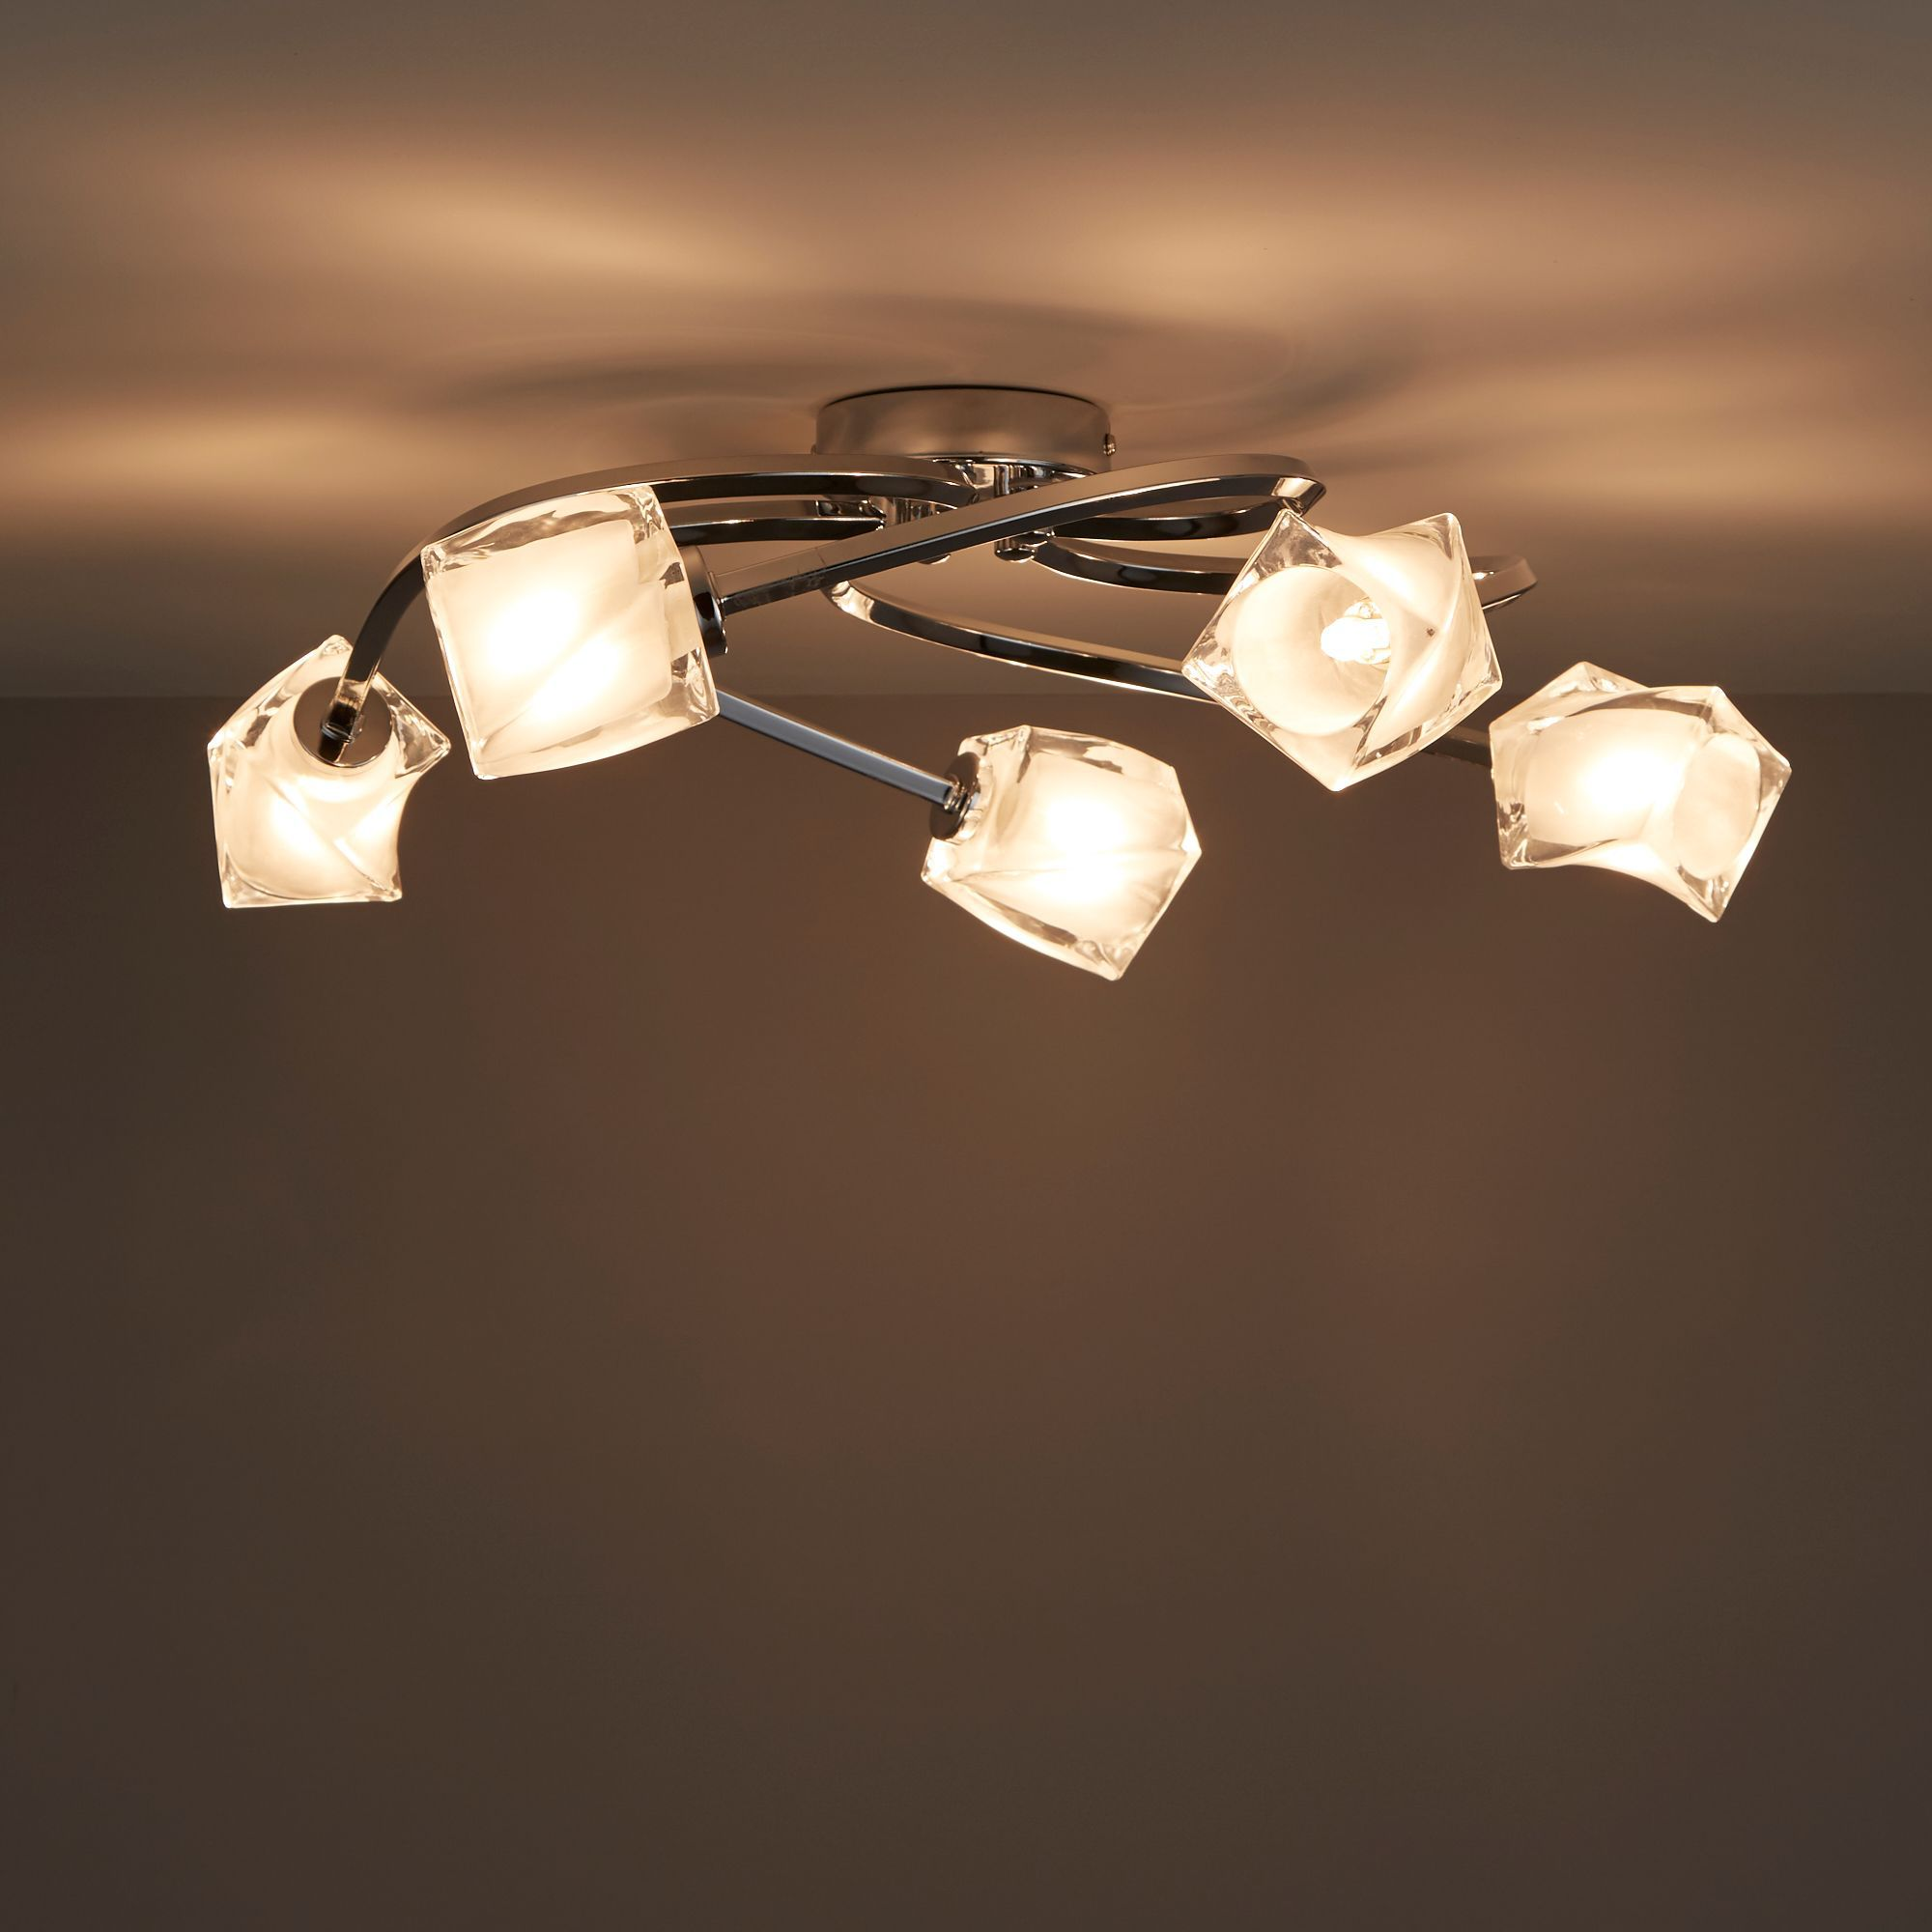 Glacies Chrome Effect 5 Lamp Ceiling Light Departments